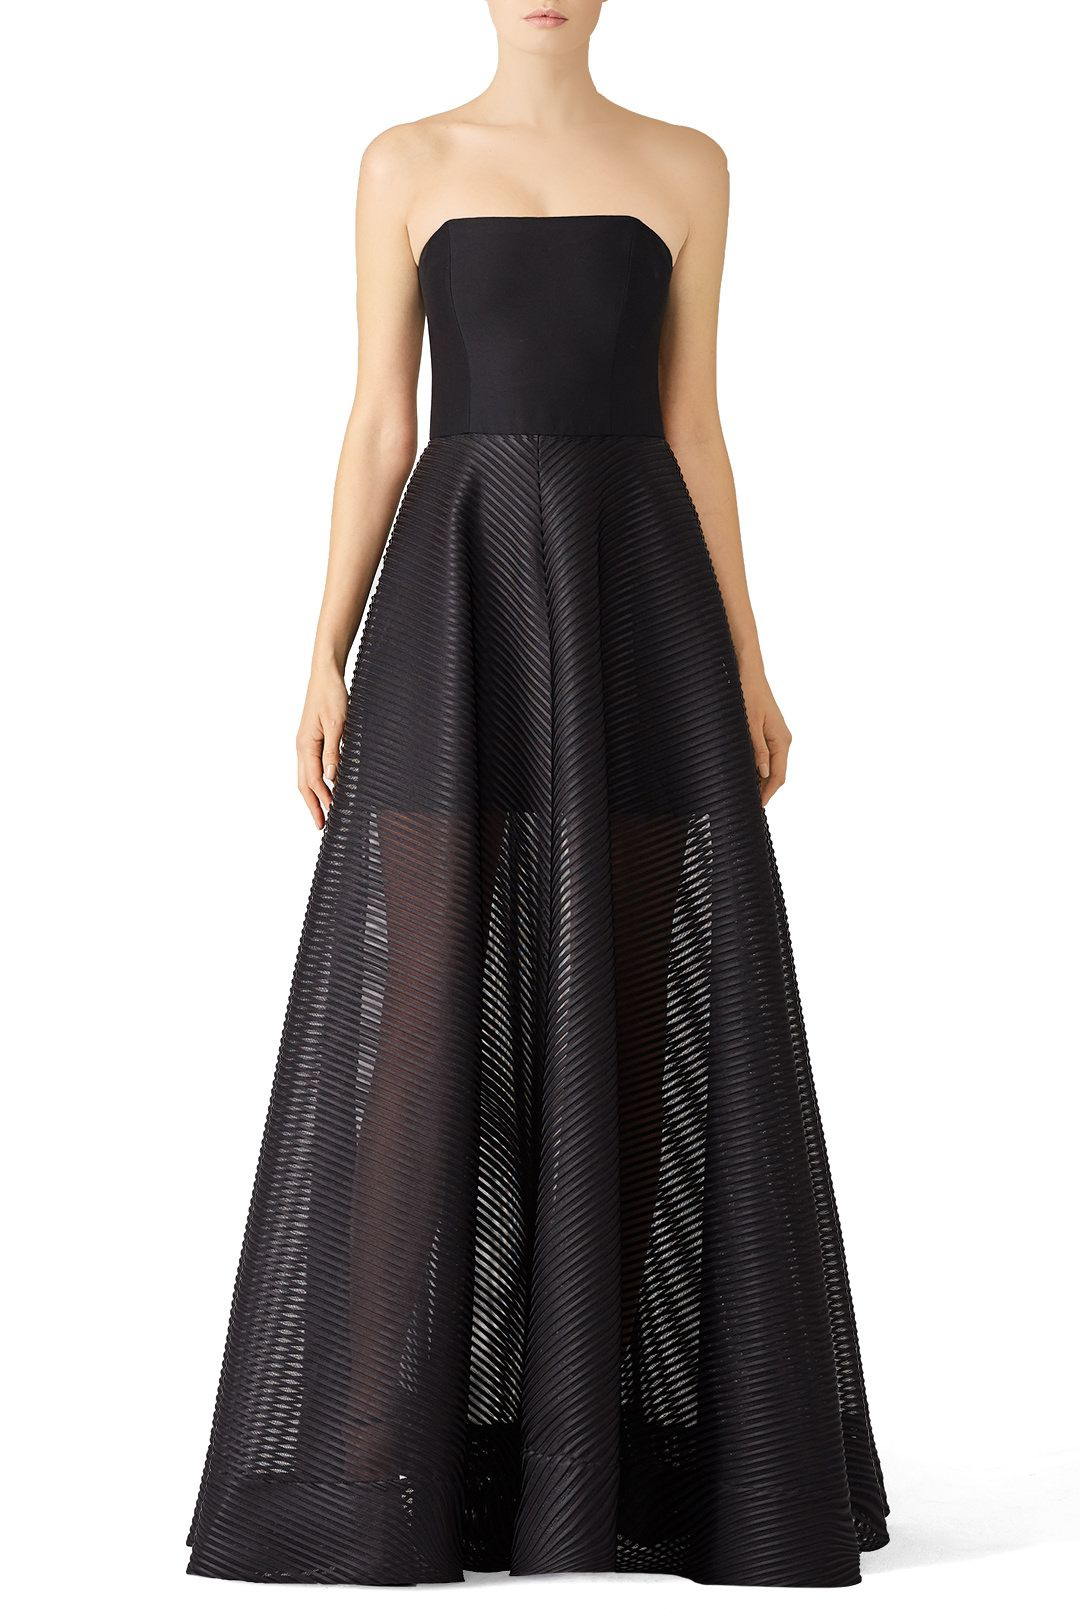 e3c84b39a340 Rent Stripe Mesh Gown by Halston Heritage for $90 - $125 only at Rent the  Runway.